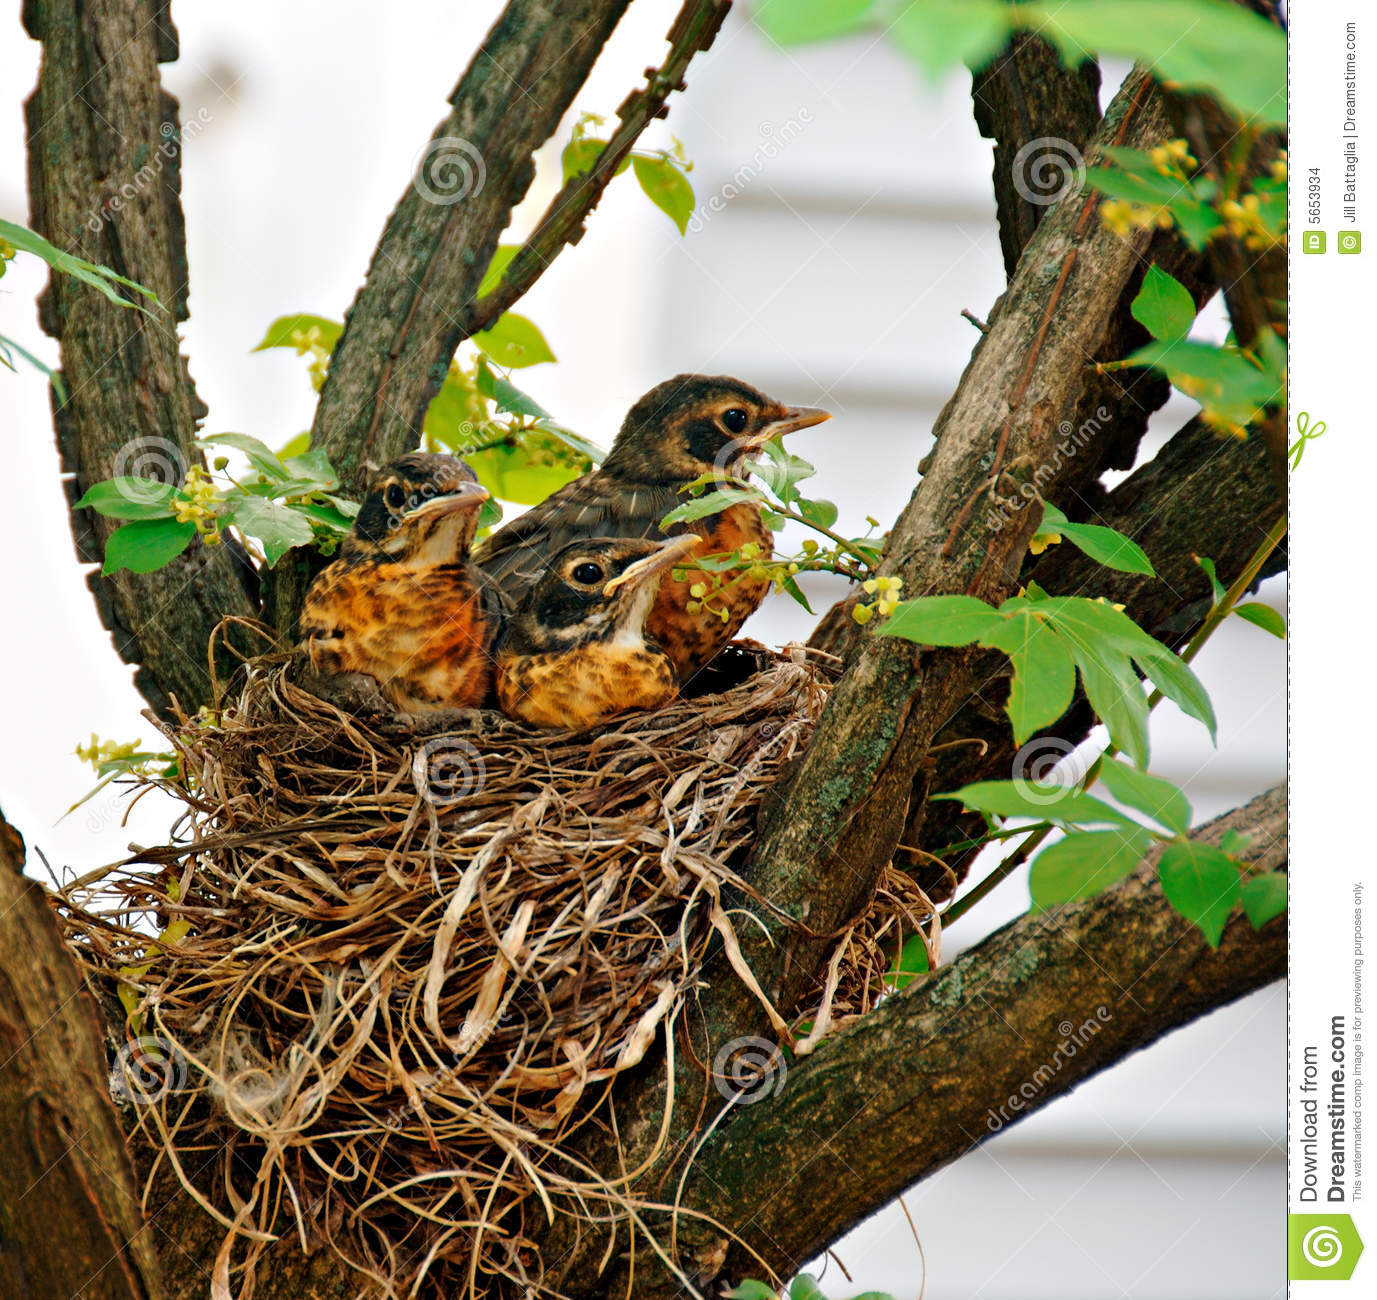 Three baby robins in their nest waiting for their mother.